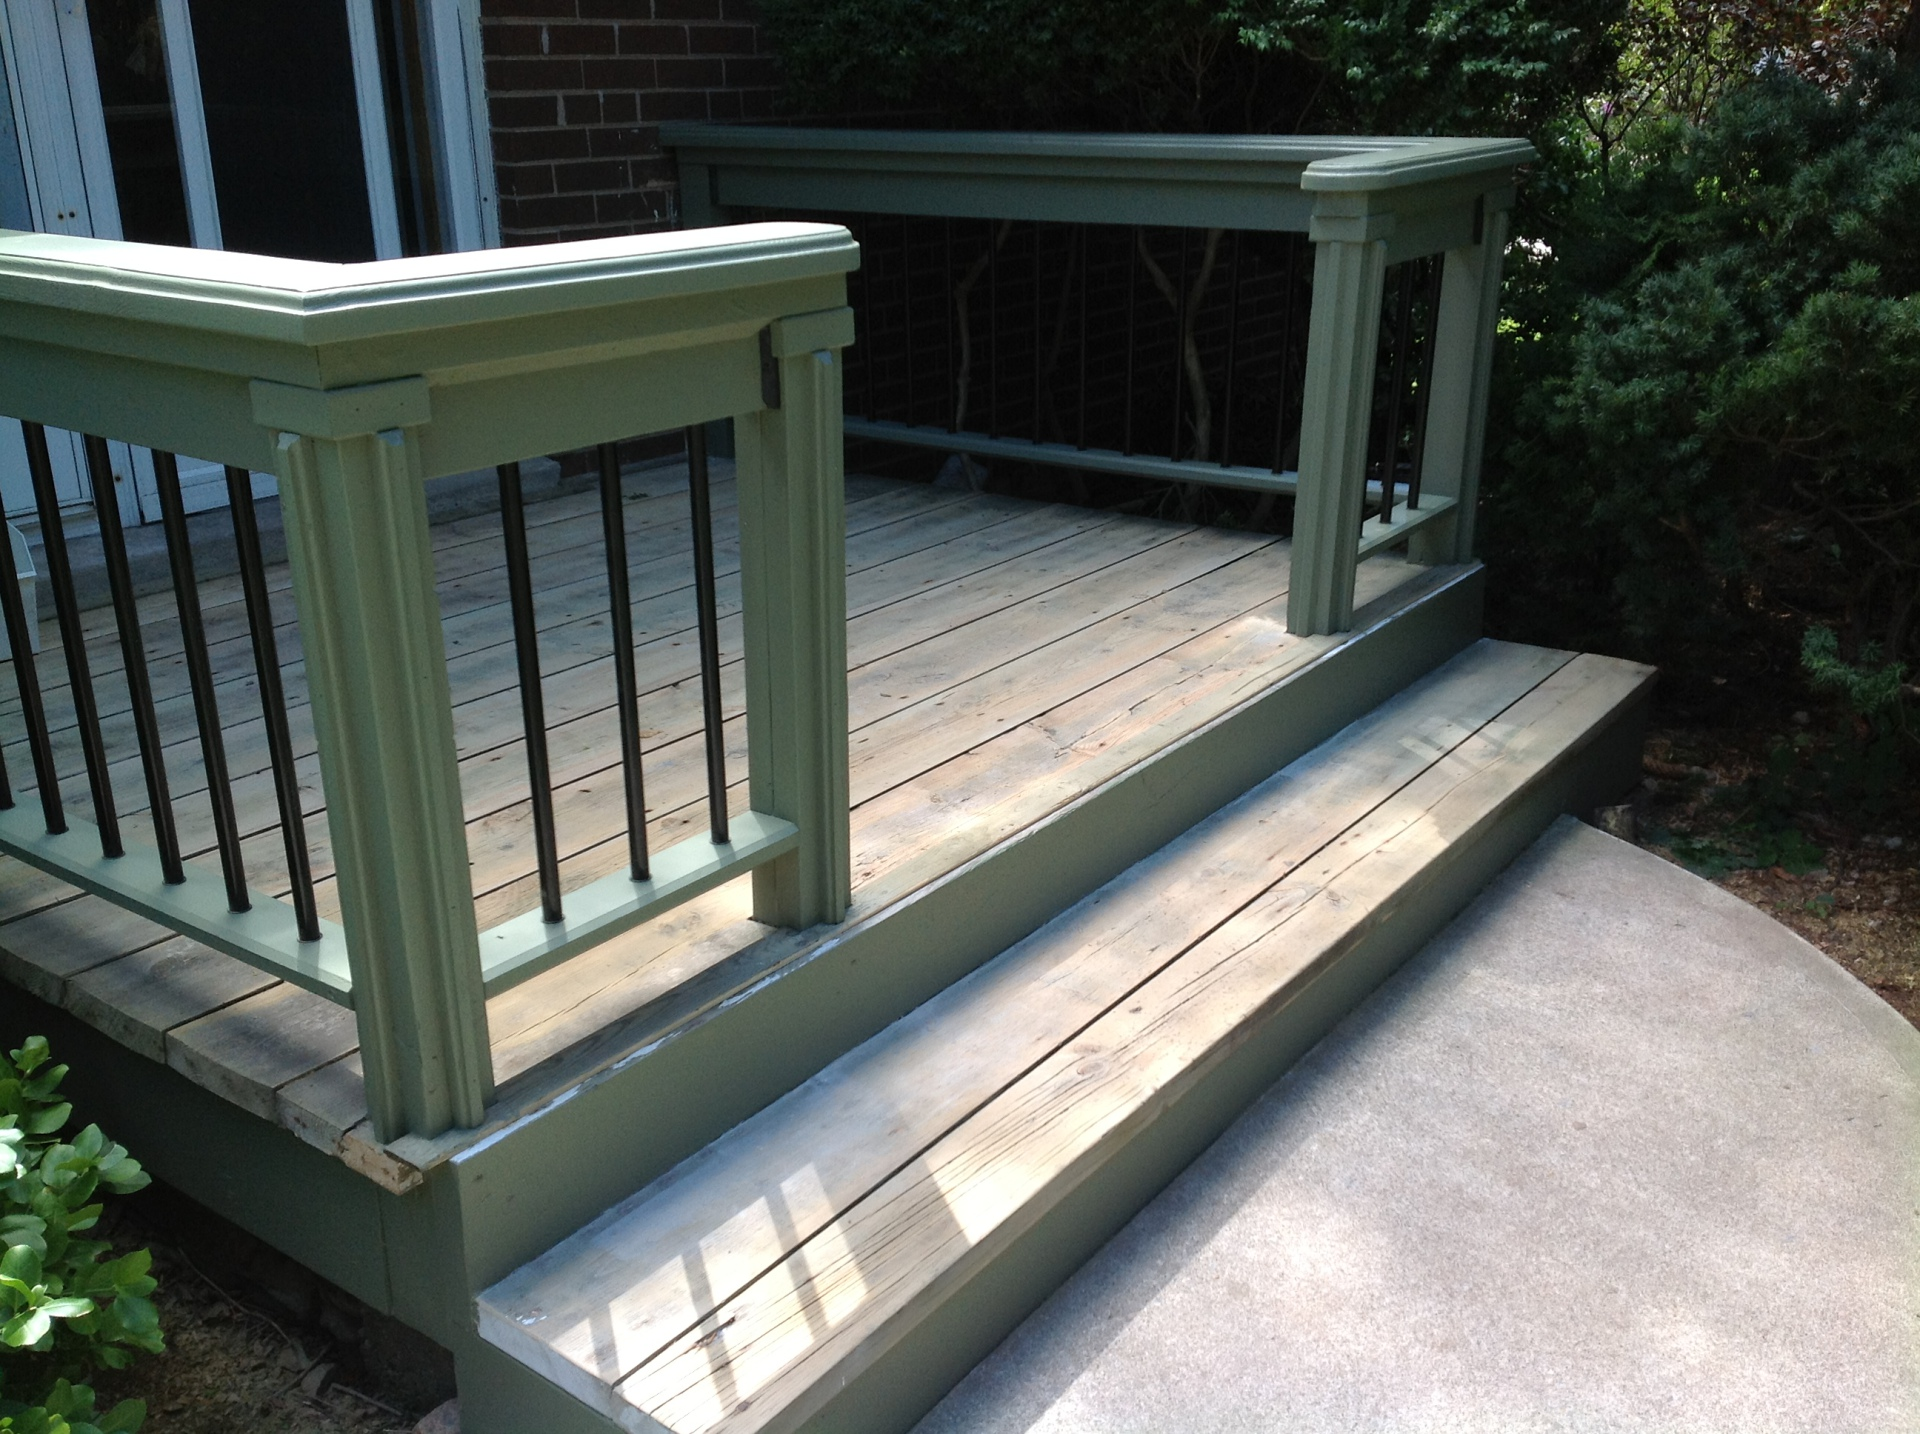 Hand Rails painted with metal spindles